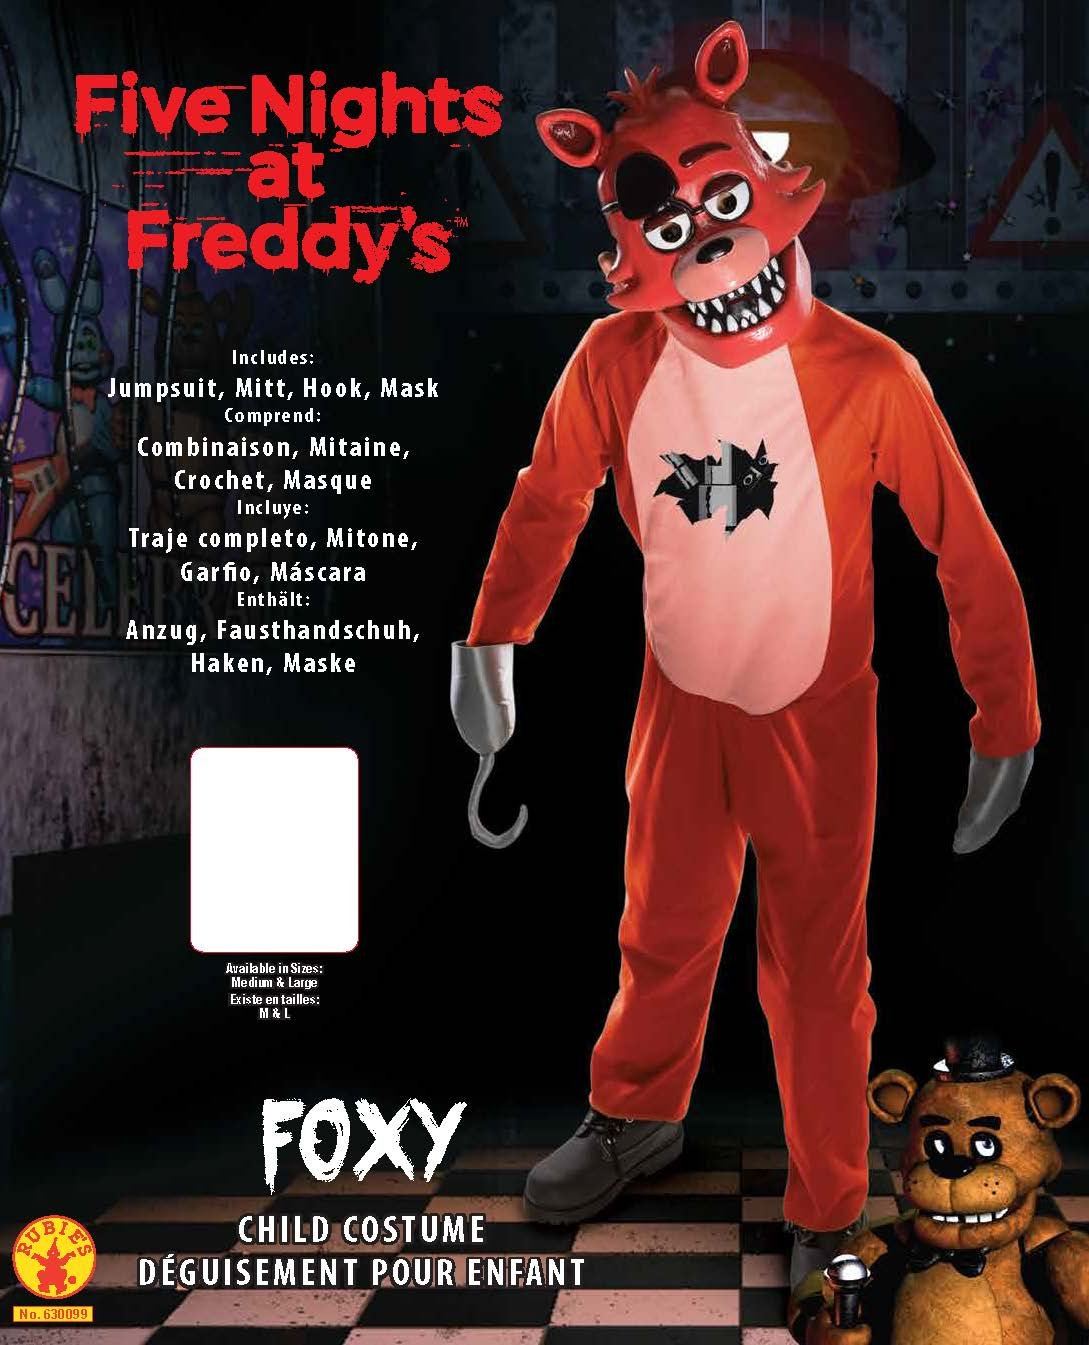 Amazon.com Rubieu0027s Five Nights Childu0027s Value-Priced at Freddyu0027s Foxy Costume Large Toys u0026 Games  sc 1 st  Amazon.com : foxy costume  - Germanpascual.Com